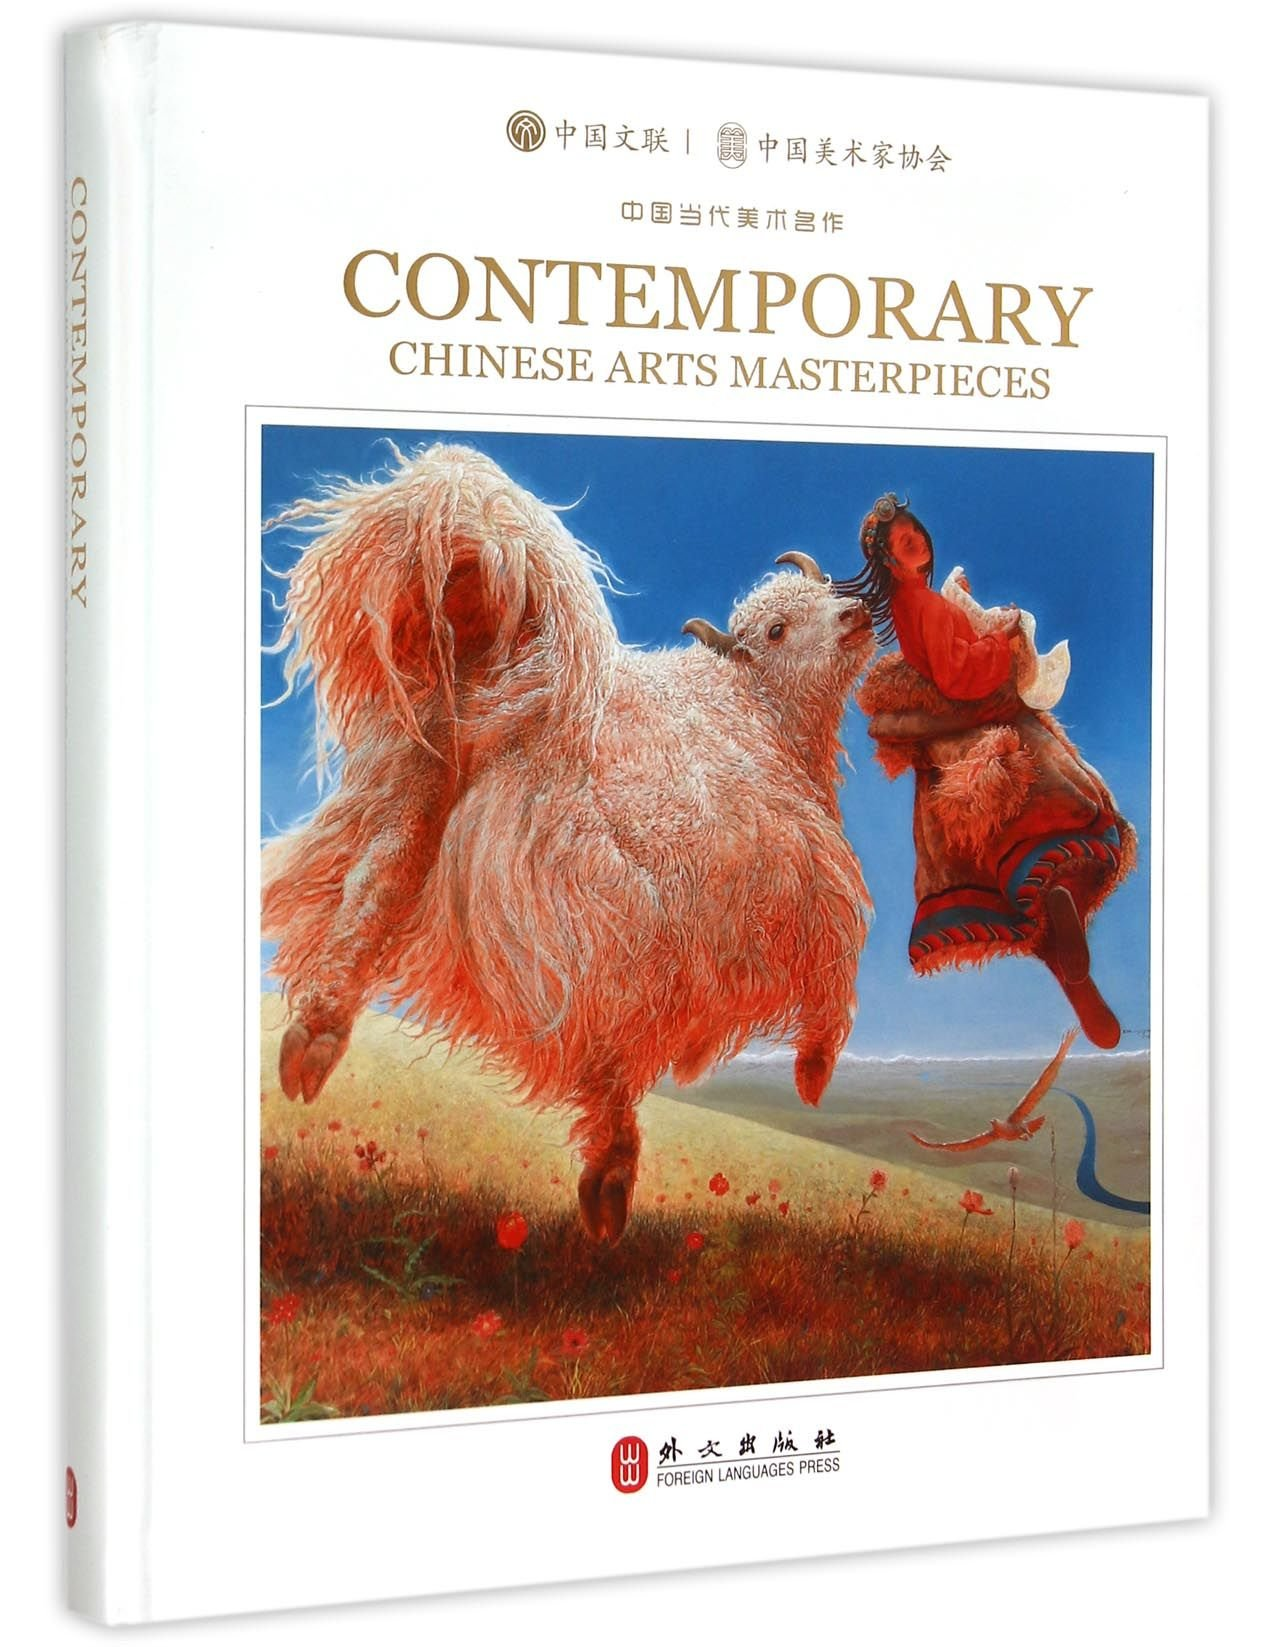 Download Contemportary Chinese Art Materpieces(Hardcover) ebook